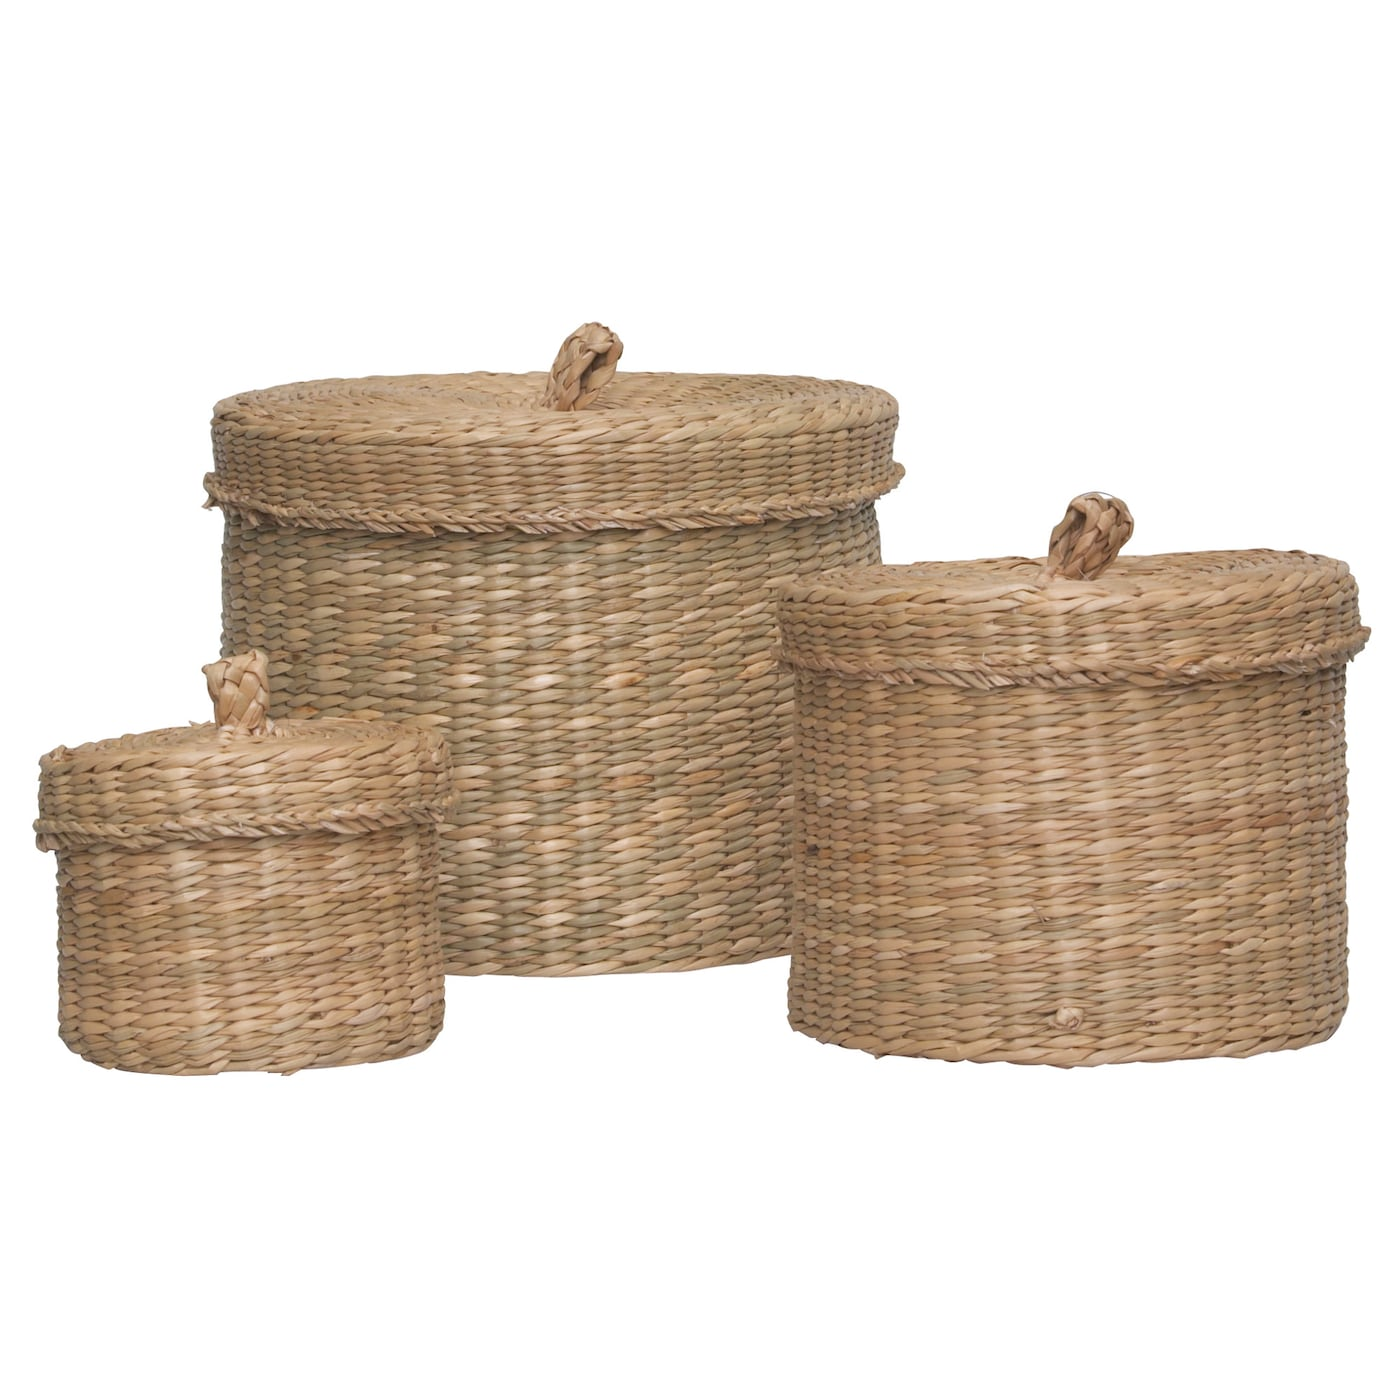 Ljusnan box with lid set of 3 seagrass ikea - Ikea cestas bano ...